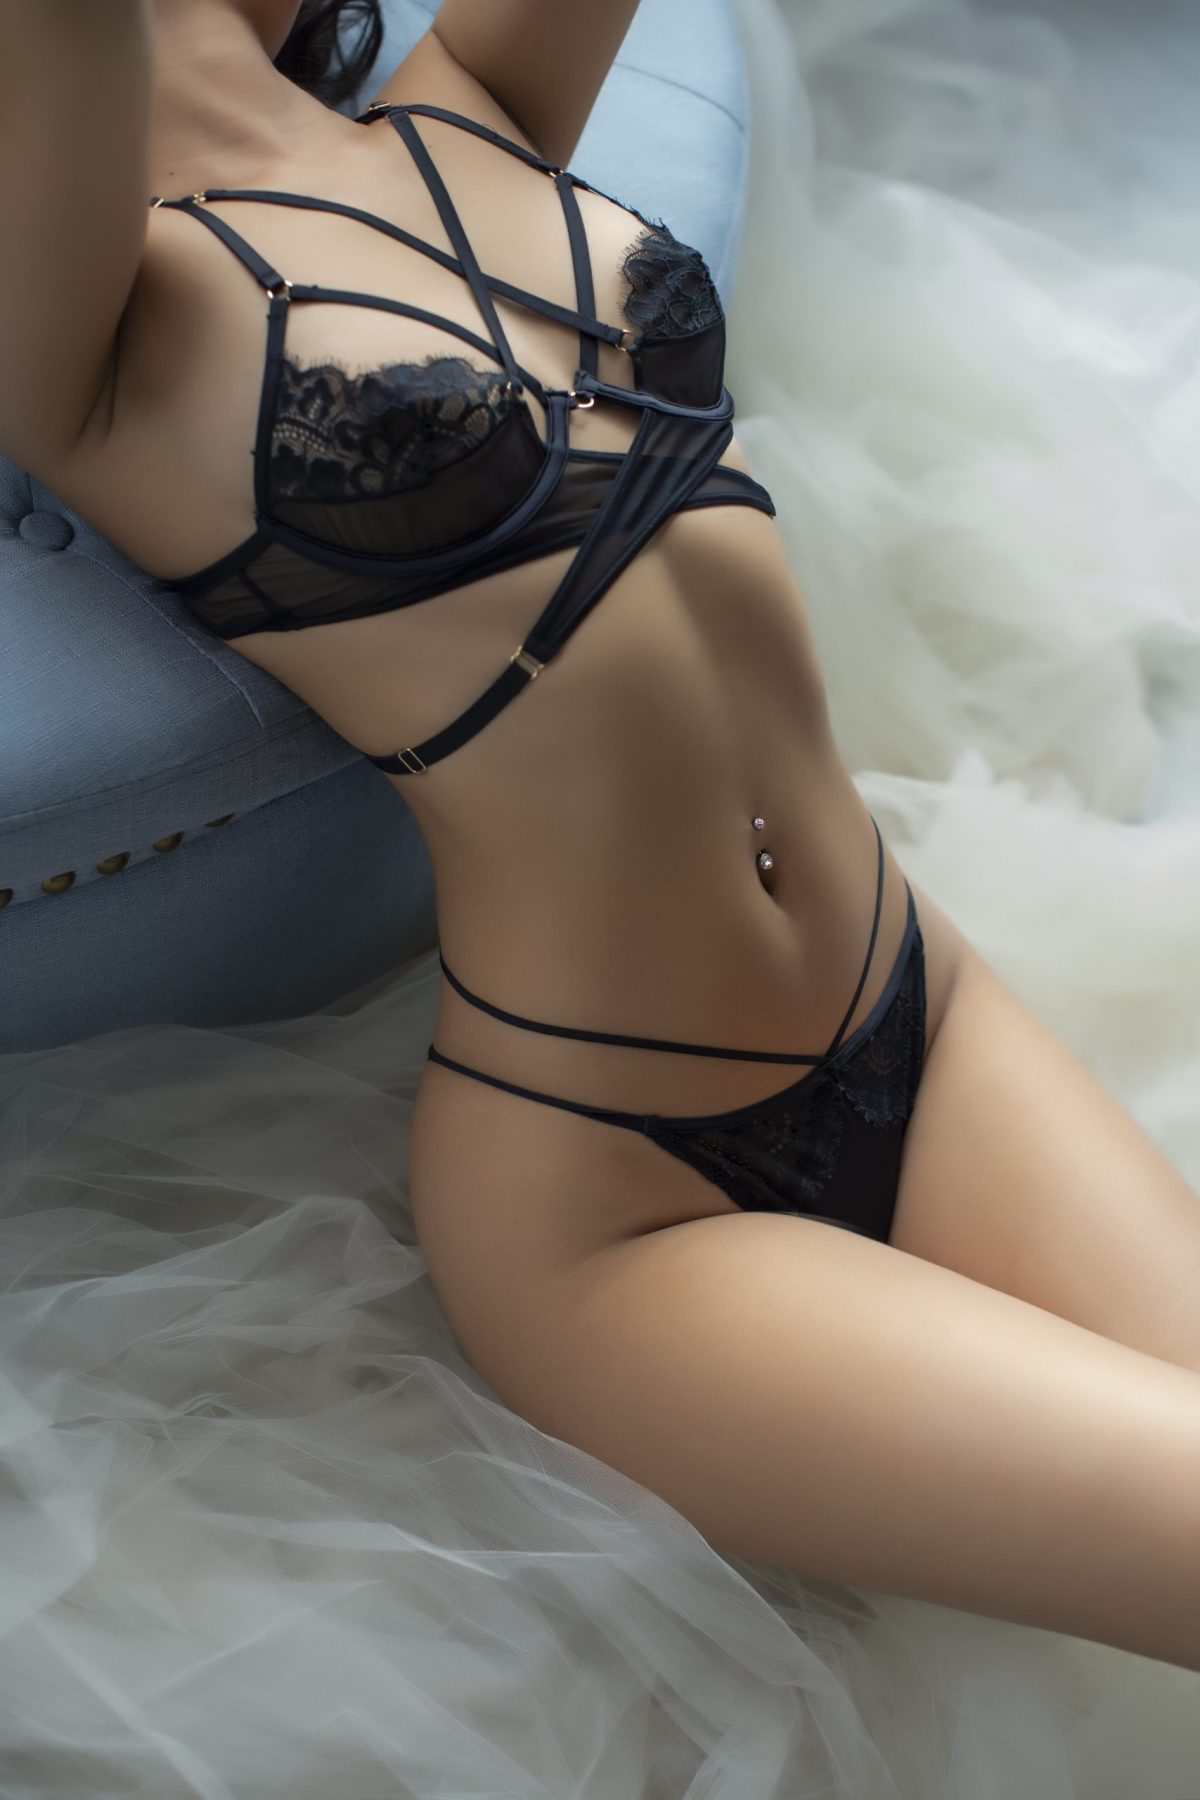 Toronto escorts companion upscale Shay Interests Disability-friendly Non-smoking Age Young Figure Slender Petite Breasts Natural Hair Raven-Haired Brunette Ethnicity Asian Tattoos Small Arrival